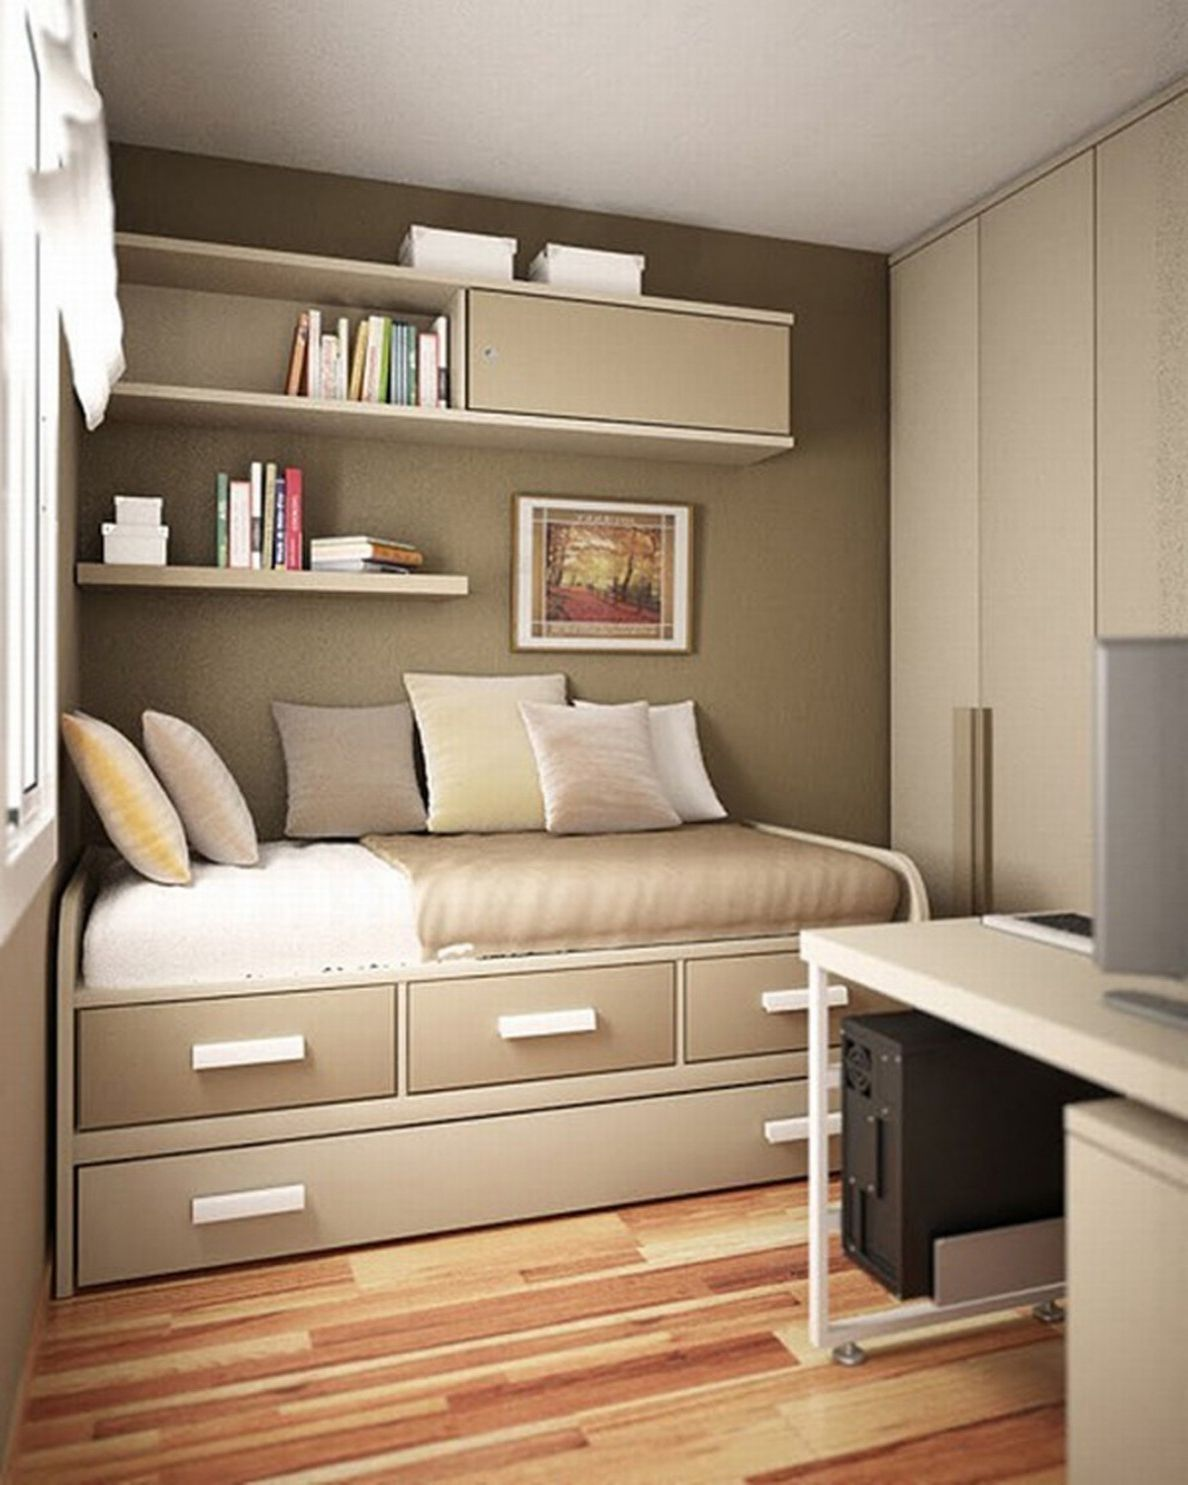 46 Small Bedroom Ideas For Space Saving With Images Small Bedroom Decor Small Room Bedroom Small Apartment Bedrooms